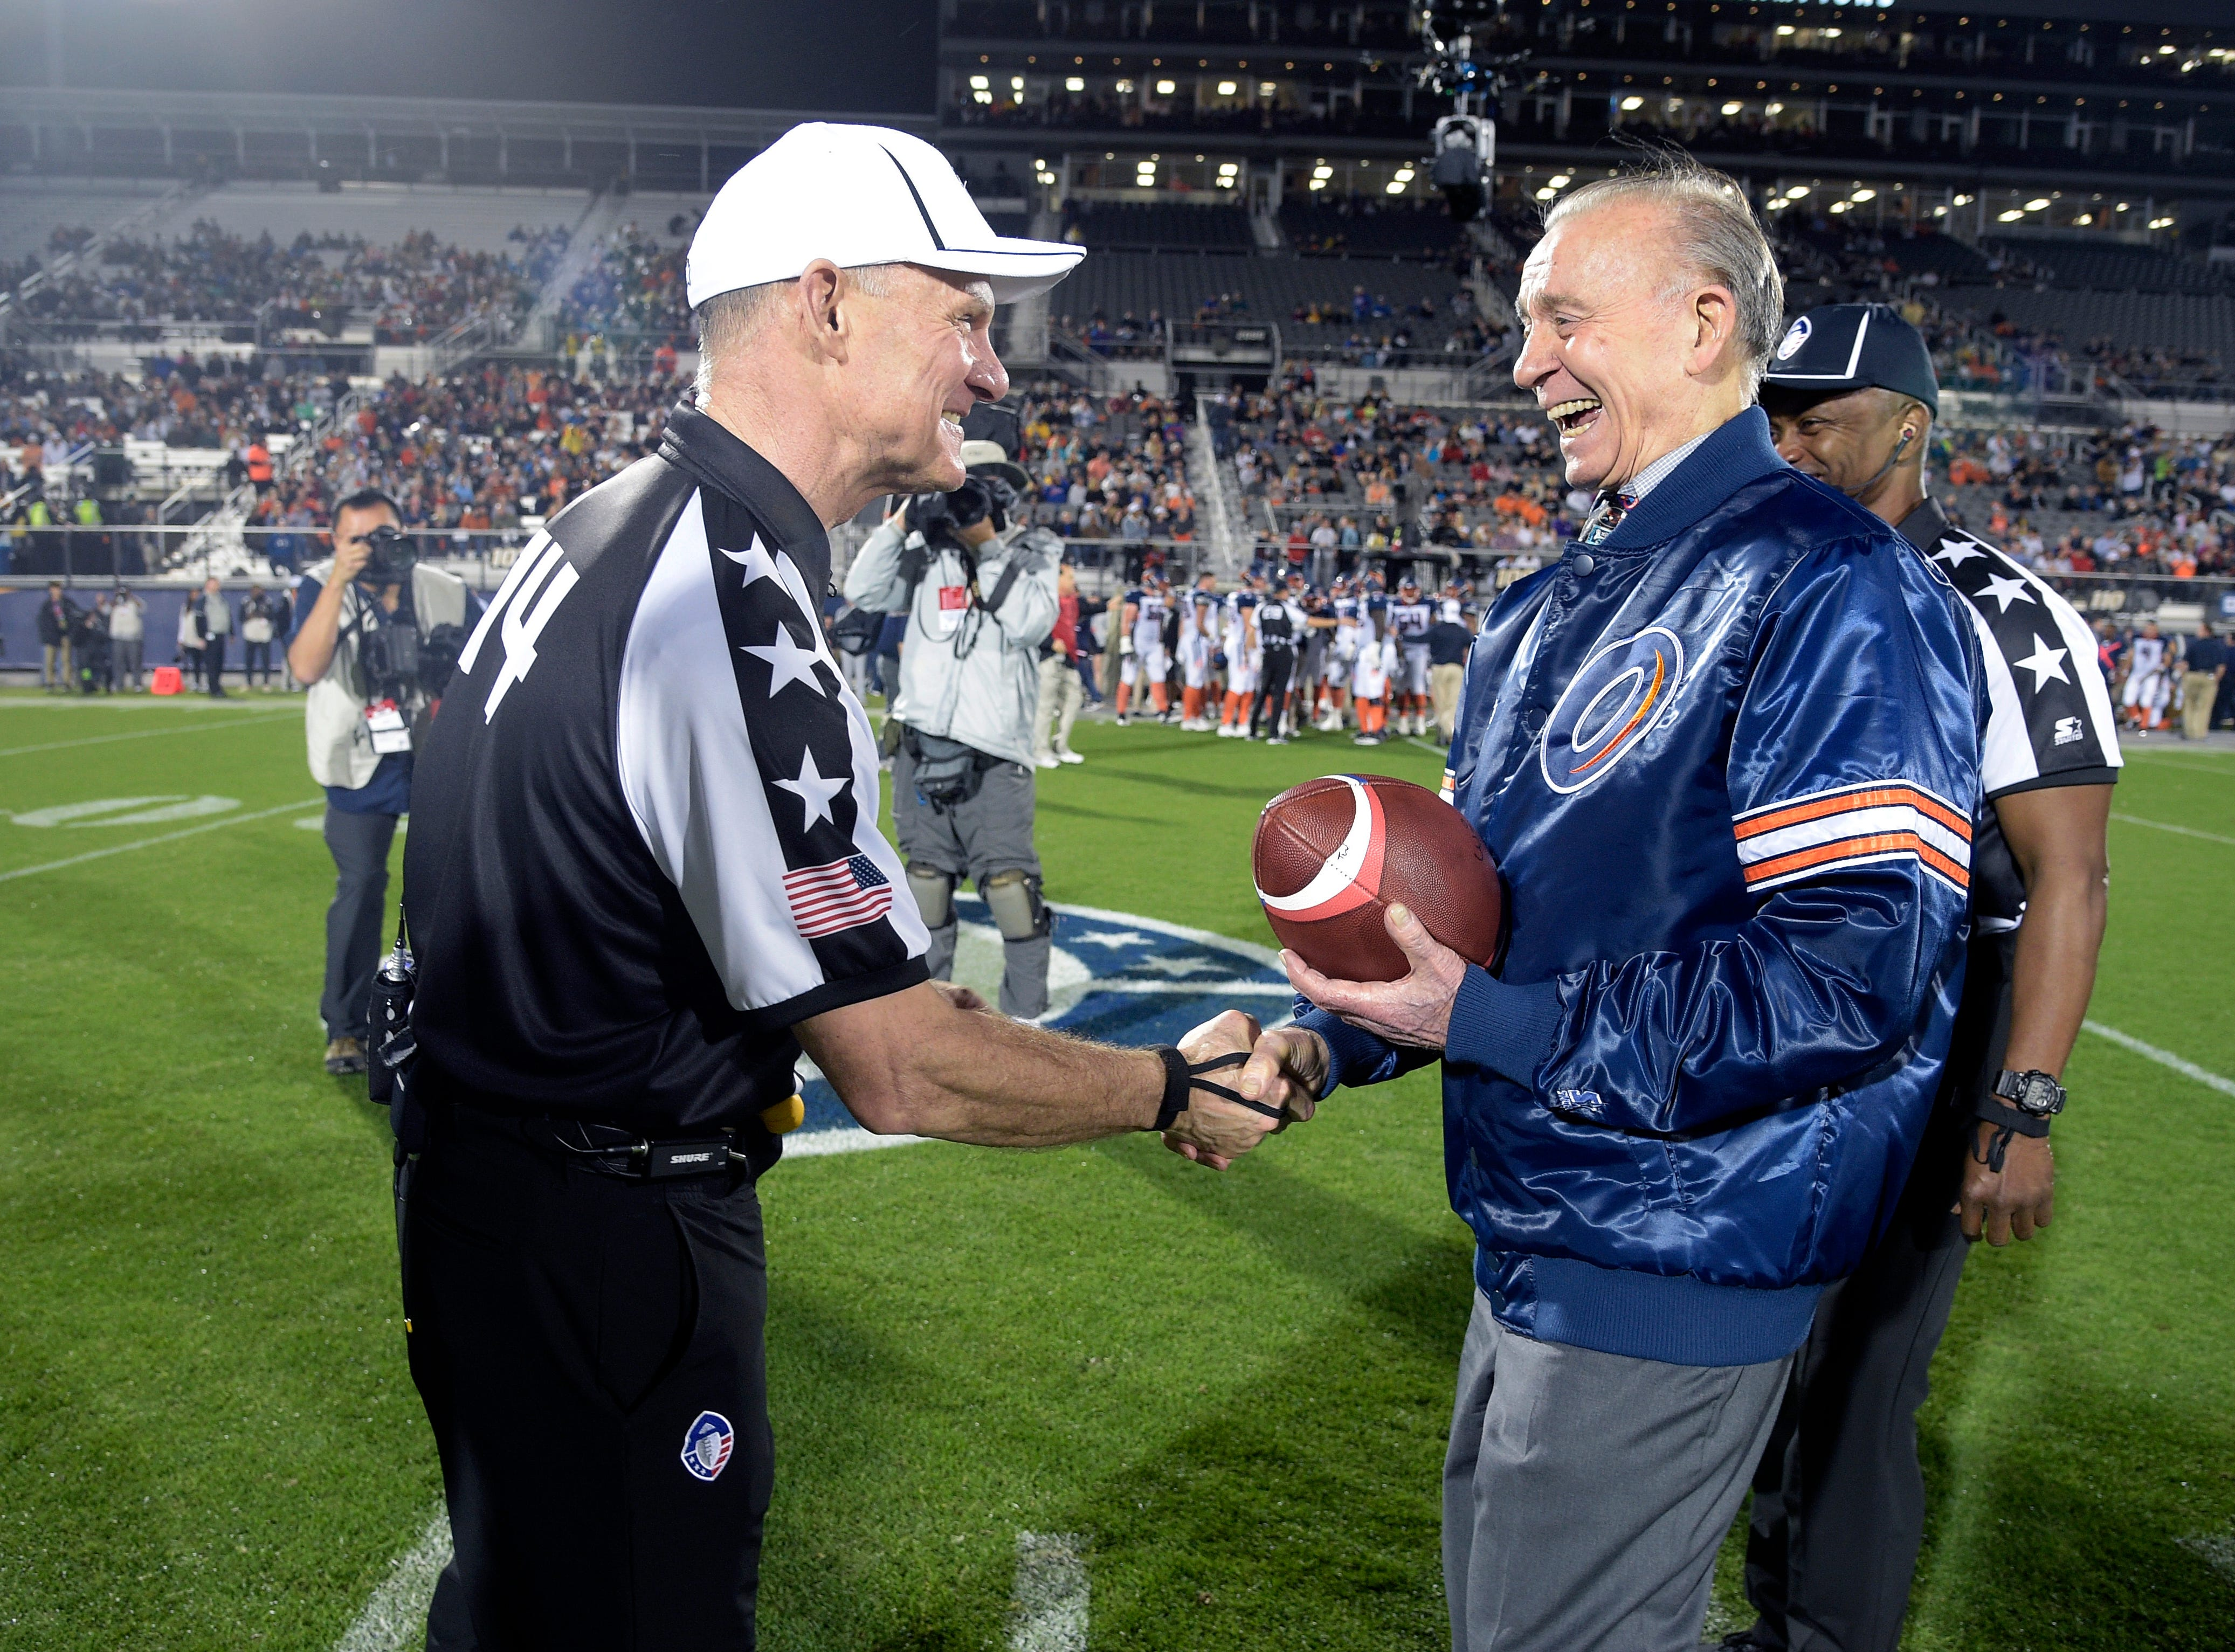 Apollo VII astronaut Walter Cunningham, right, delivers the game ball to official John O'Neill on the field before an Alliance of American Football game between the Orlando Apollos and the Atlanta Legends on Saturday, Feb. 9, 2019, in Orlando, Fla. (AP Photo/Phelan M. Ebenhack)